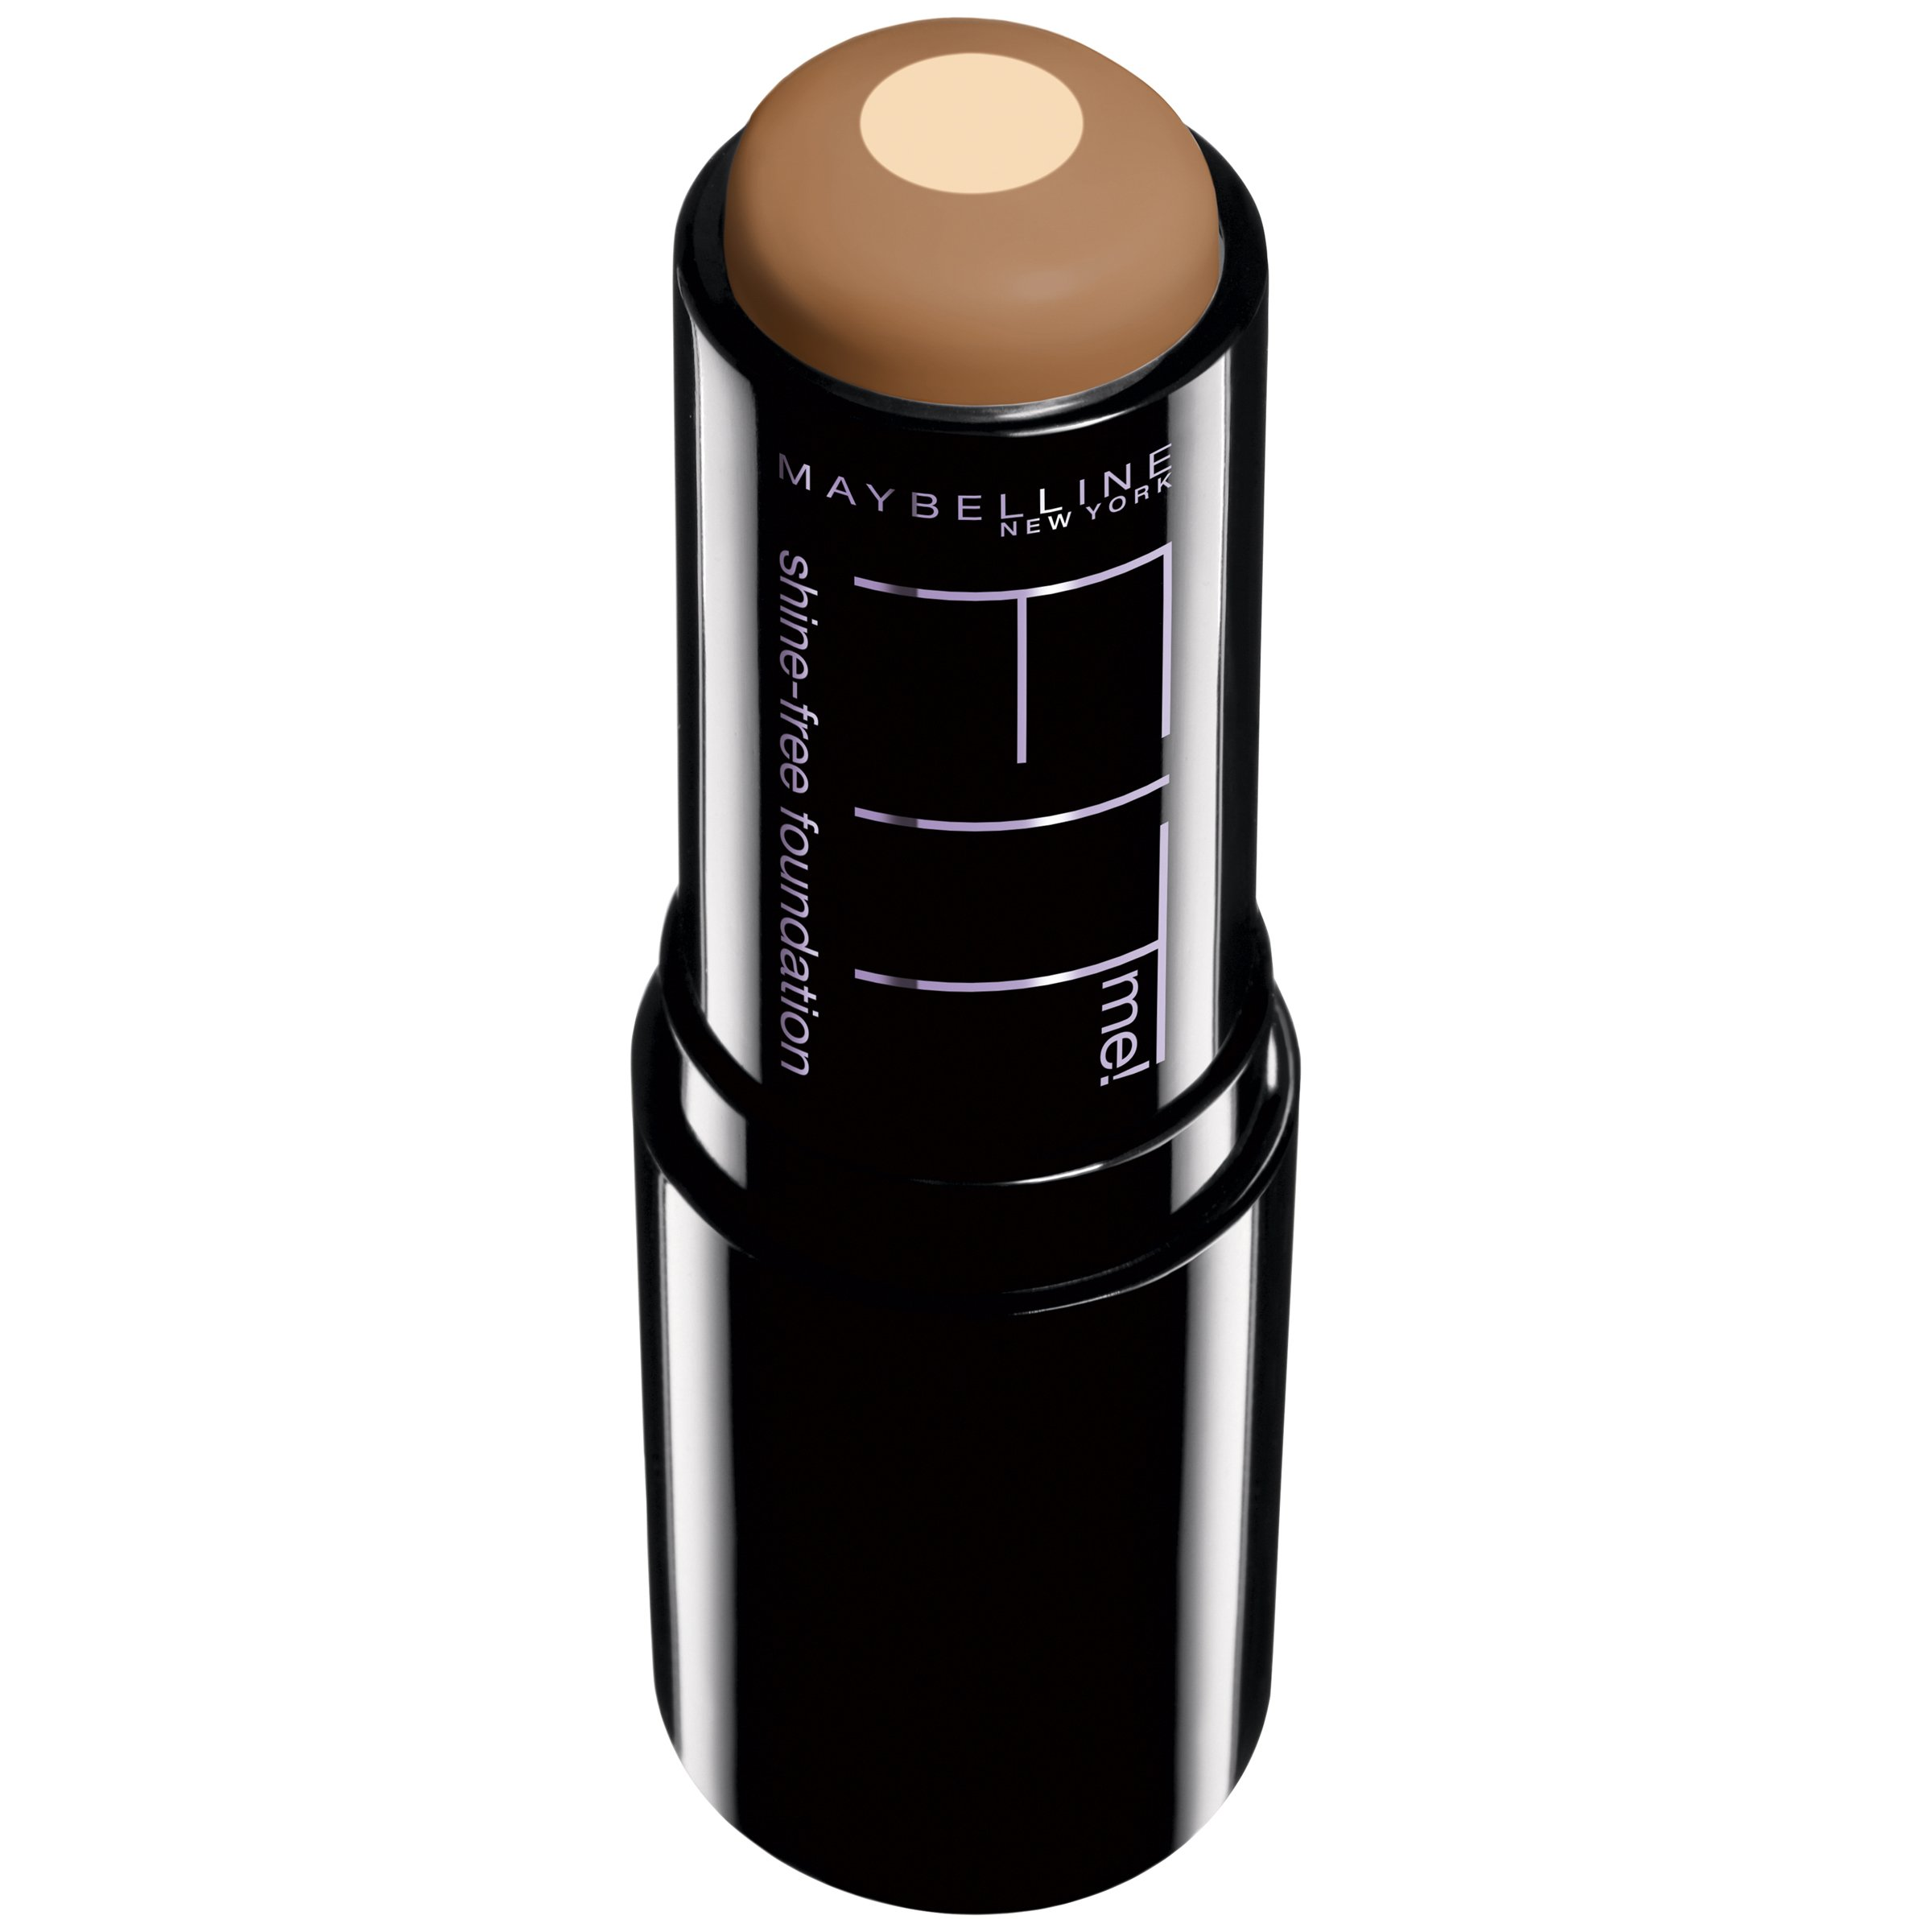 Maybelline New York Fit Me! Oil-Free Stick Foundation, 355 Coconut